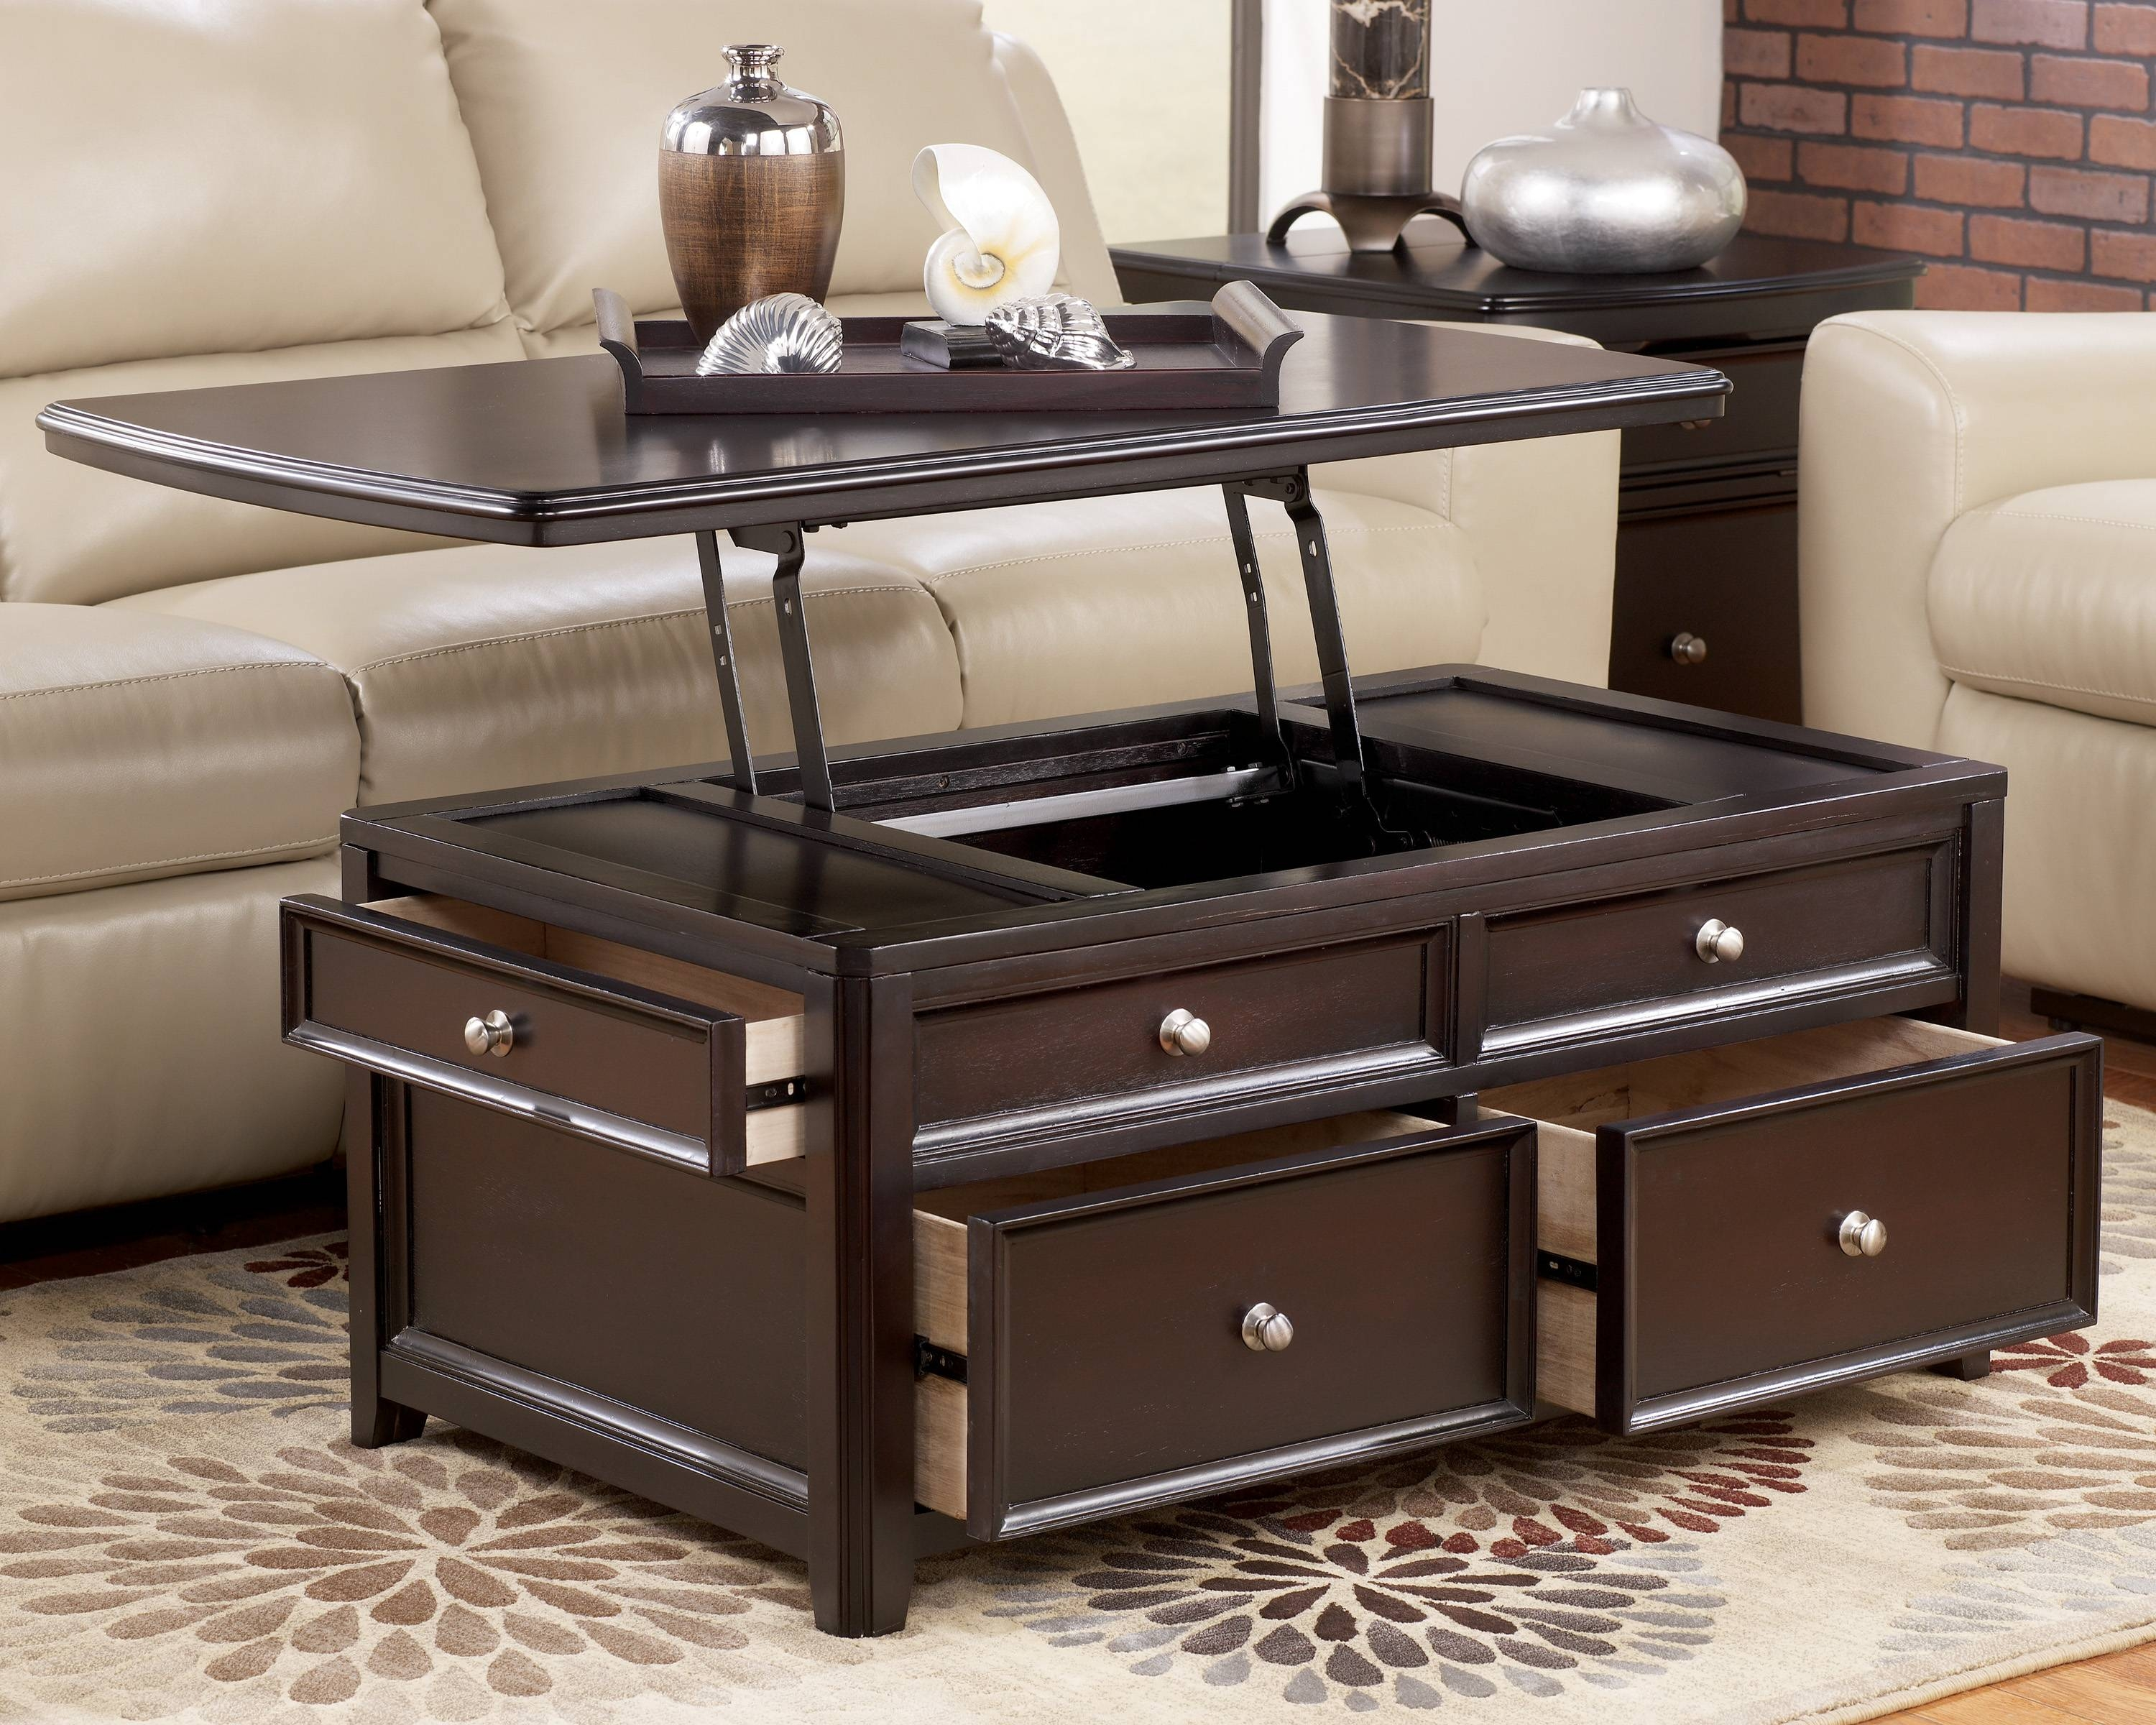 Coffee Table: Mesmerizing Lift Top Coffee Tables With Storage throughout Coffee Tables With Storage (Image 10 of 30)